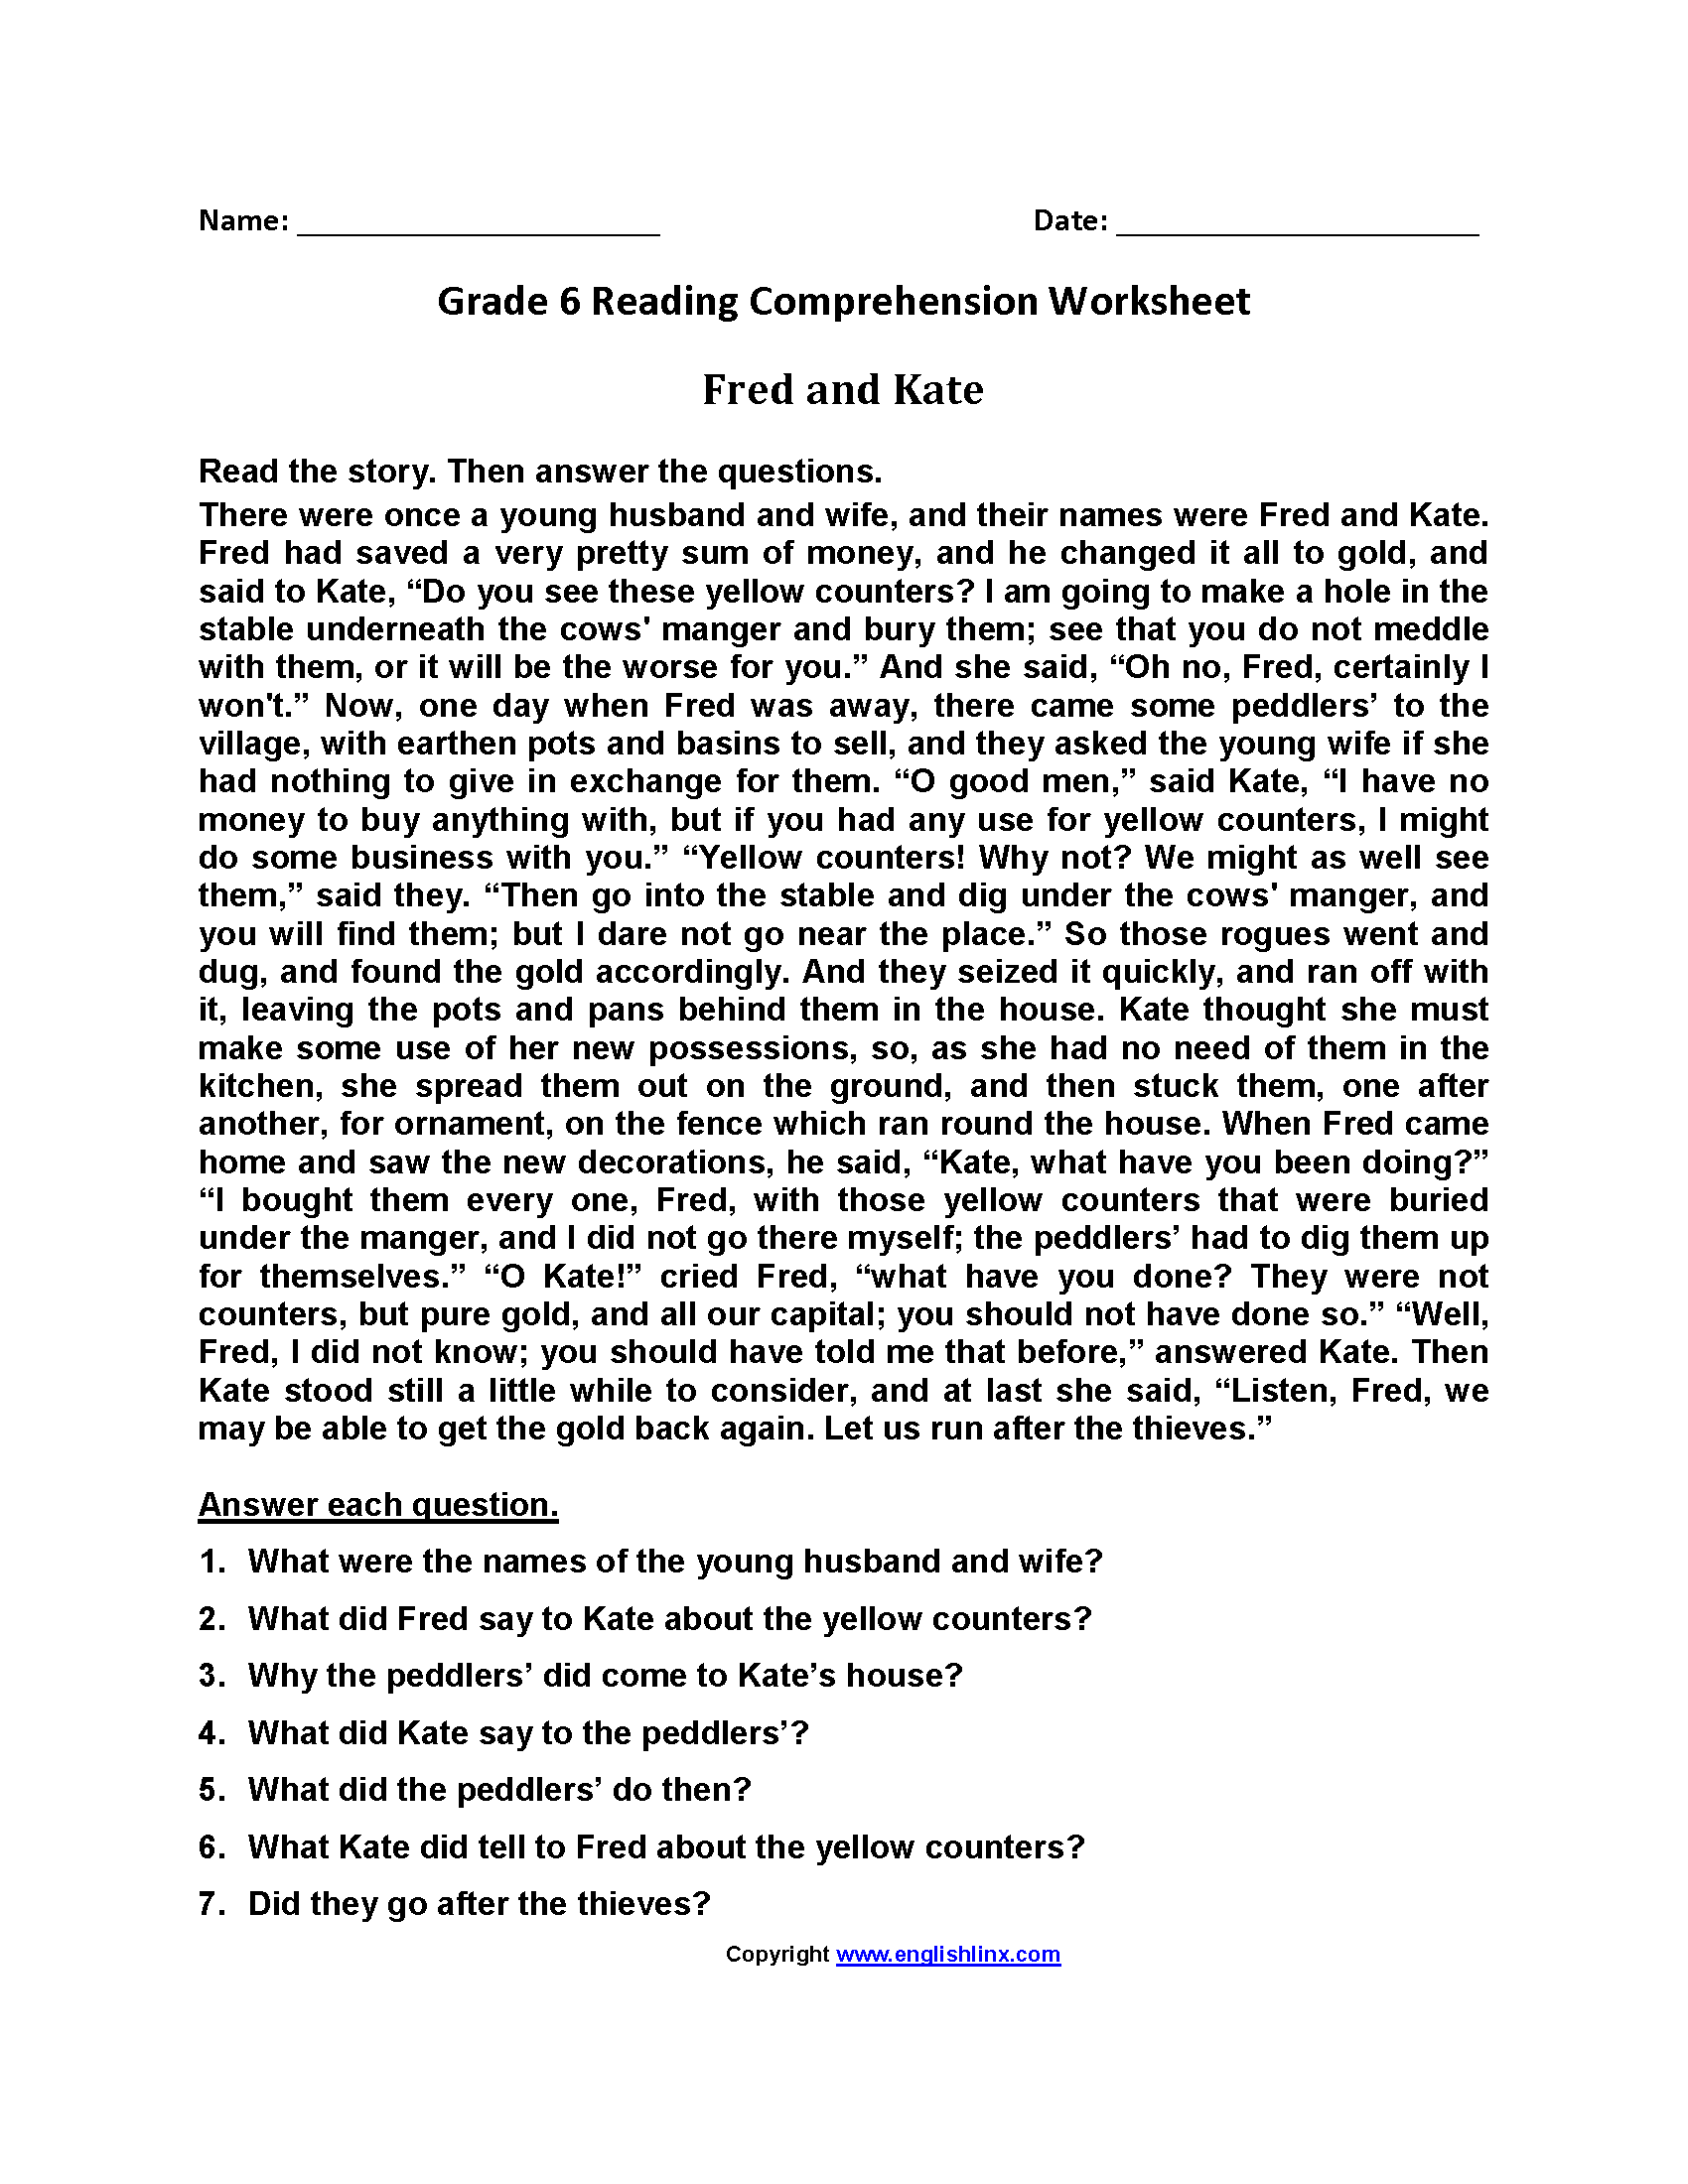 Fred And Kate Sixth Grade Reading Worksheets